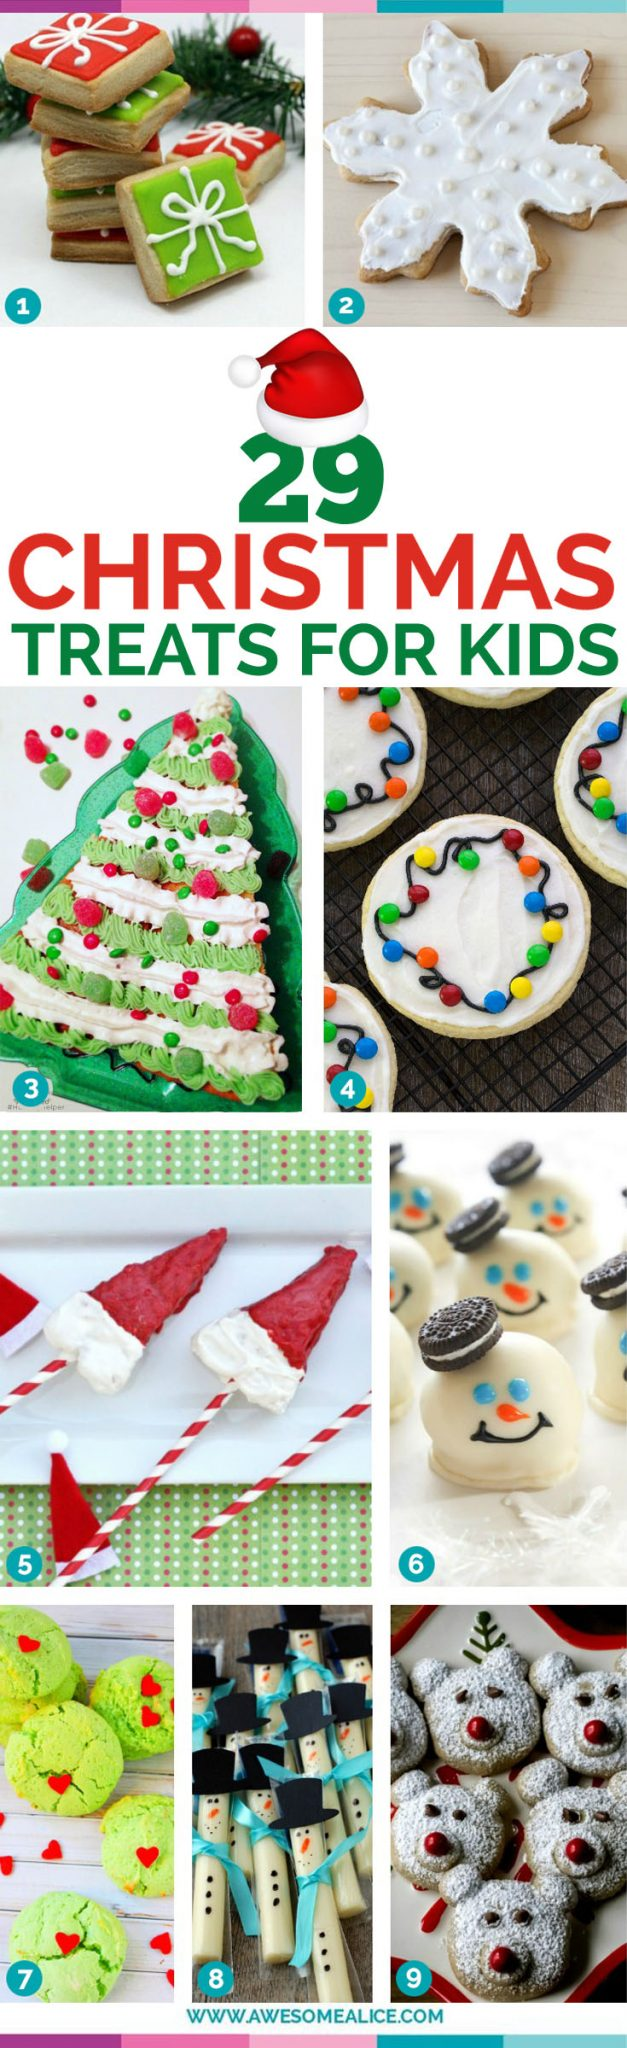 The Best Christmas Cookies To Make With Your Kids - Awesome Alice